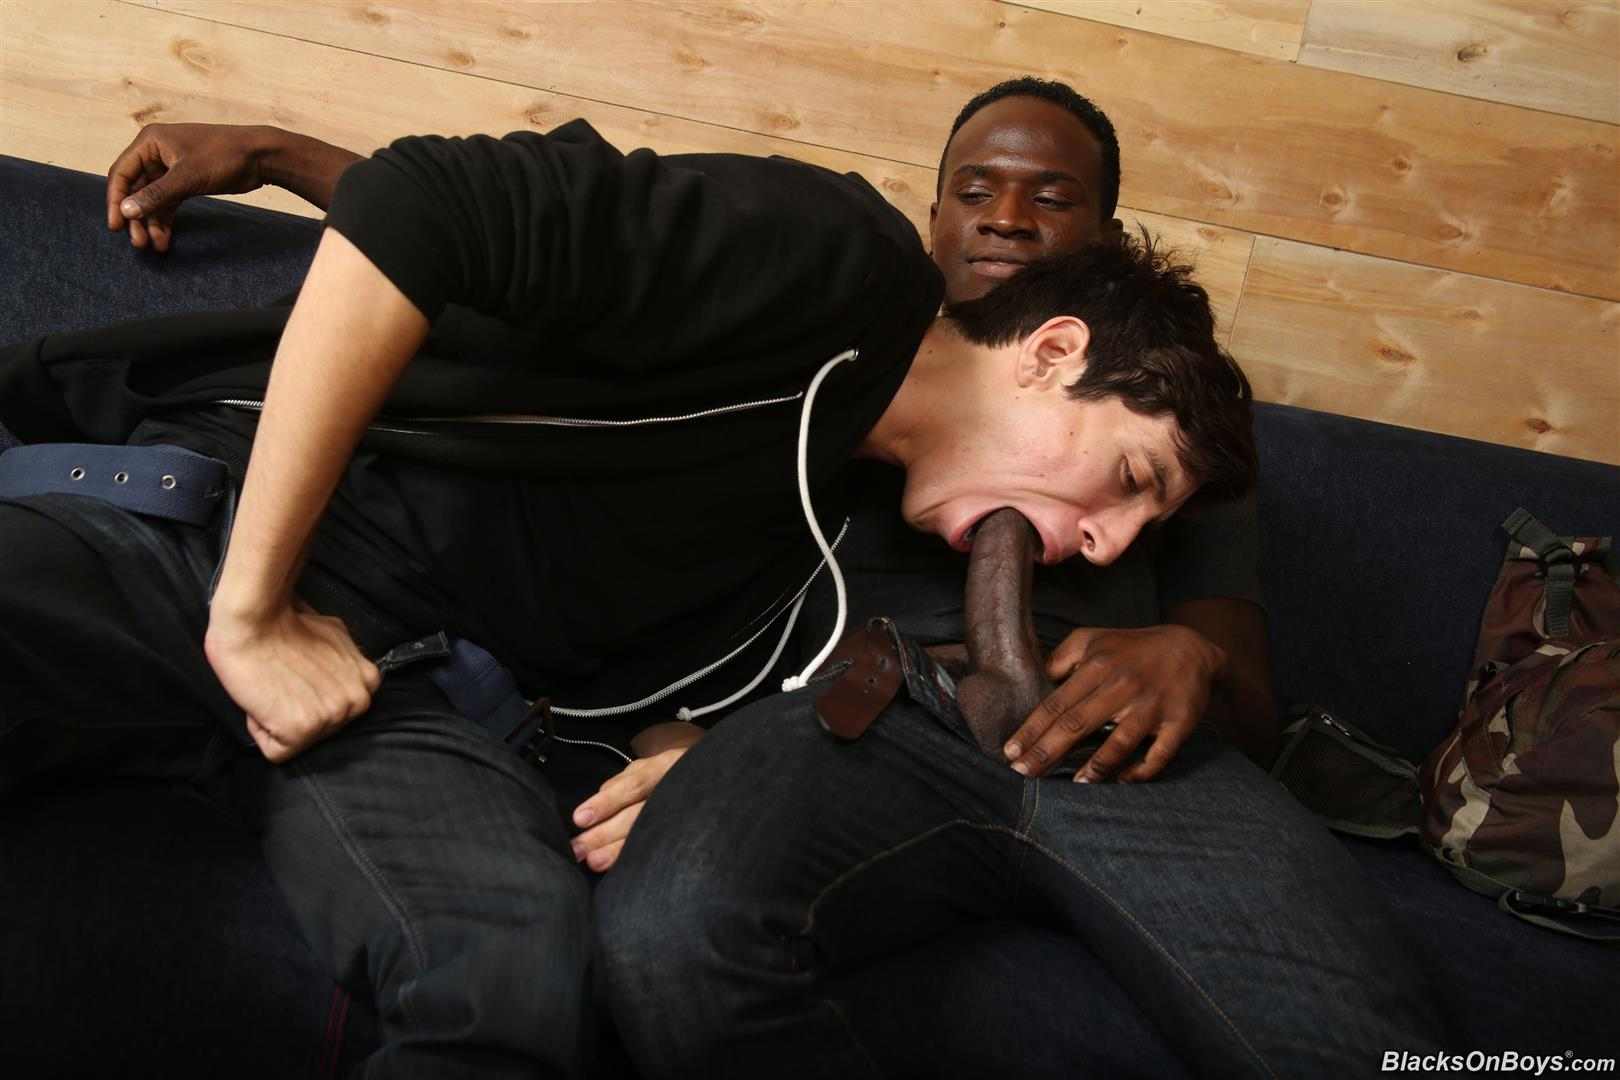 Blacks On Boys Billy Eastmore and Tyko Interracial Gay Fucking Amateur Gay Porn 04 Amateur College Dude Takes His First Big Black Cock Up The Ass